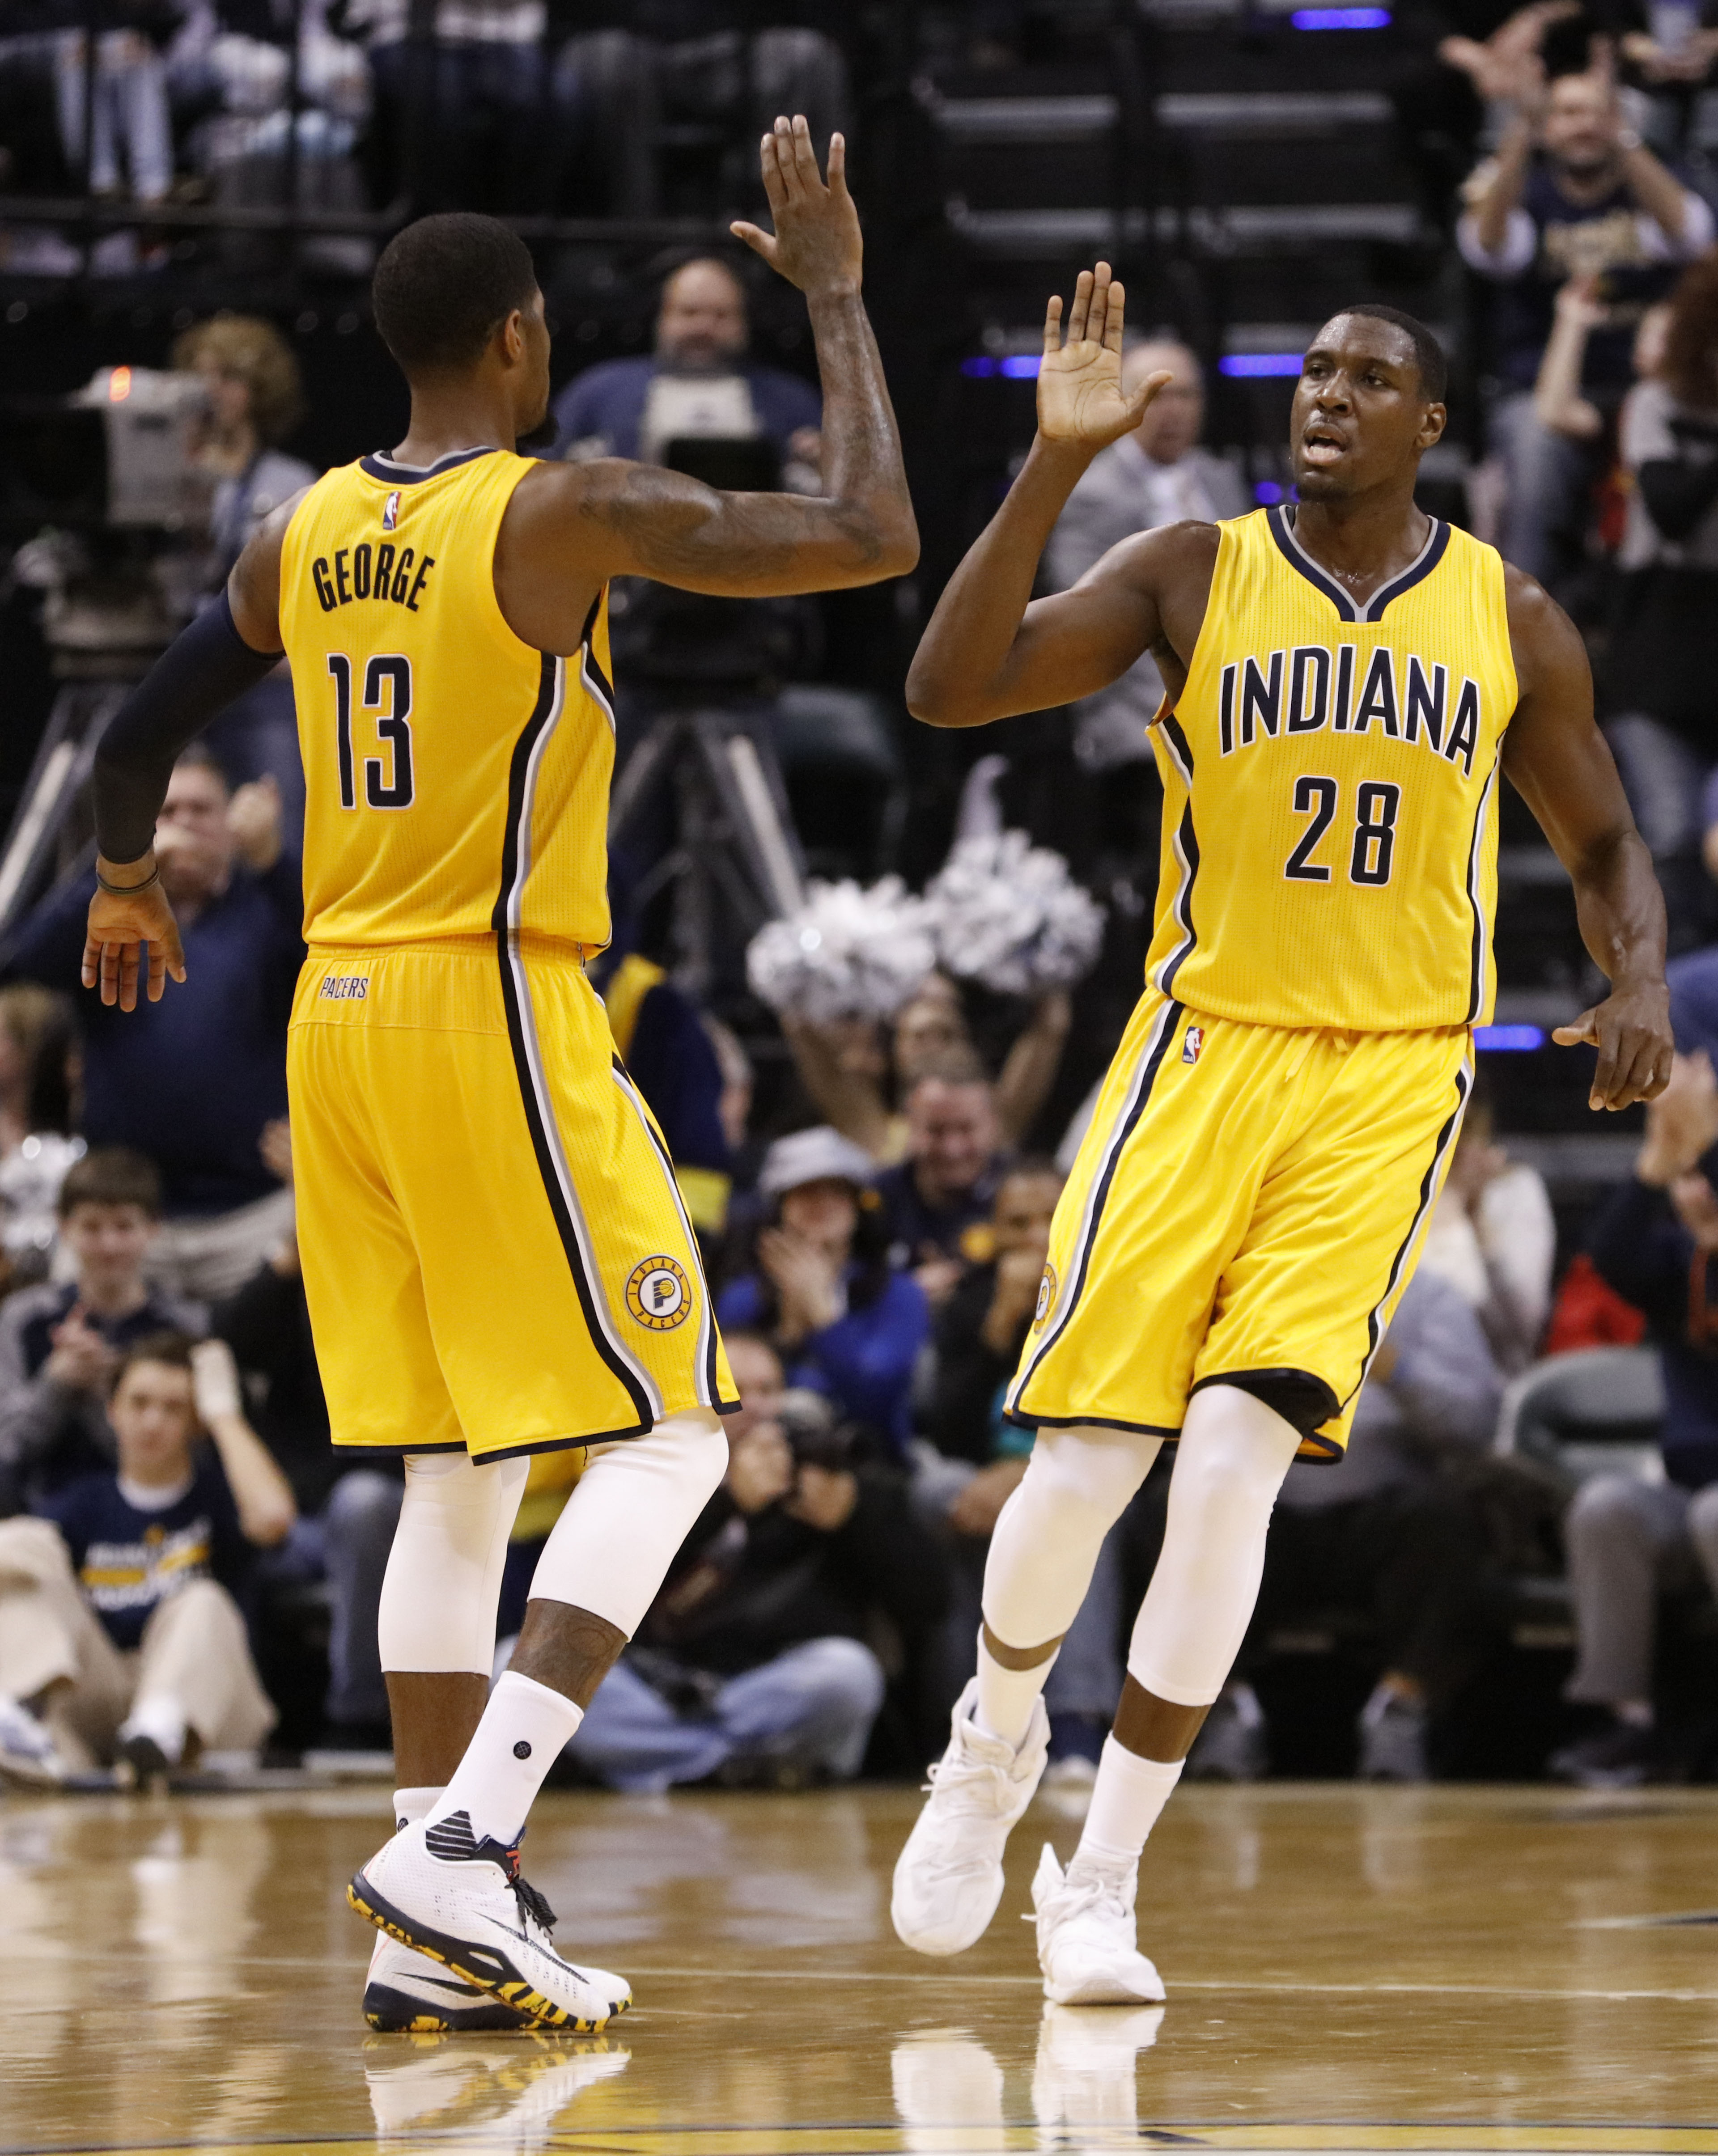 Indiana Pacers center Ian Mahinmi (28) celebrates a late basket off an offensive rebound with teammate Paul George (13) during the second half of an NBA basketball game against the Atlanta Hawks in Indianapolis, Monday, Dec. 28, 2015. The Pacers won 93-87